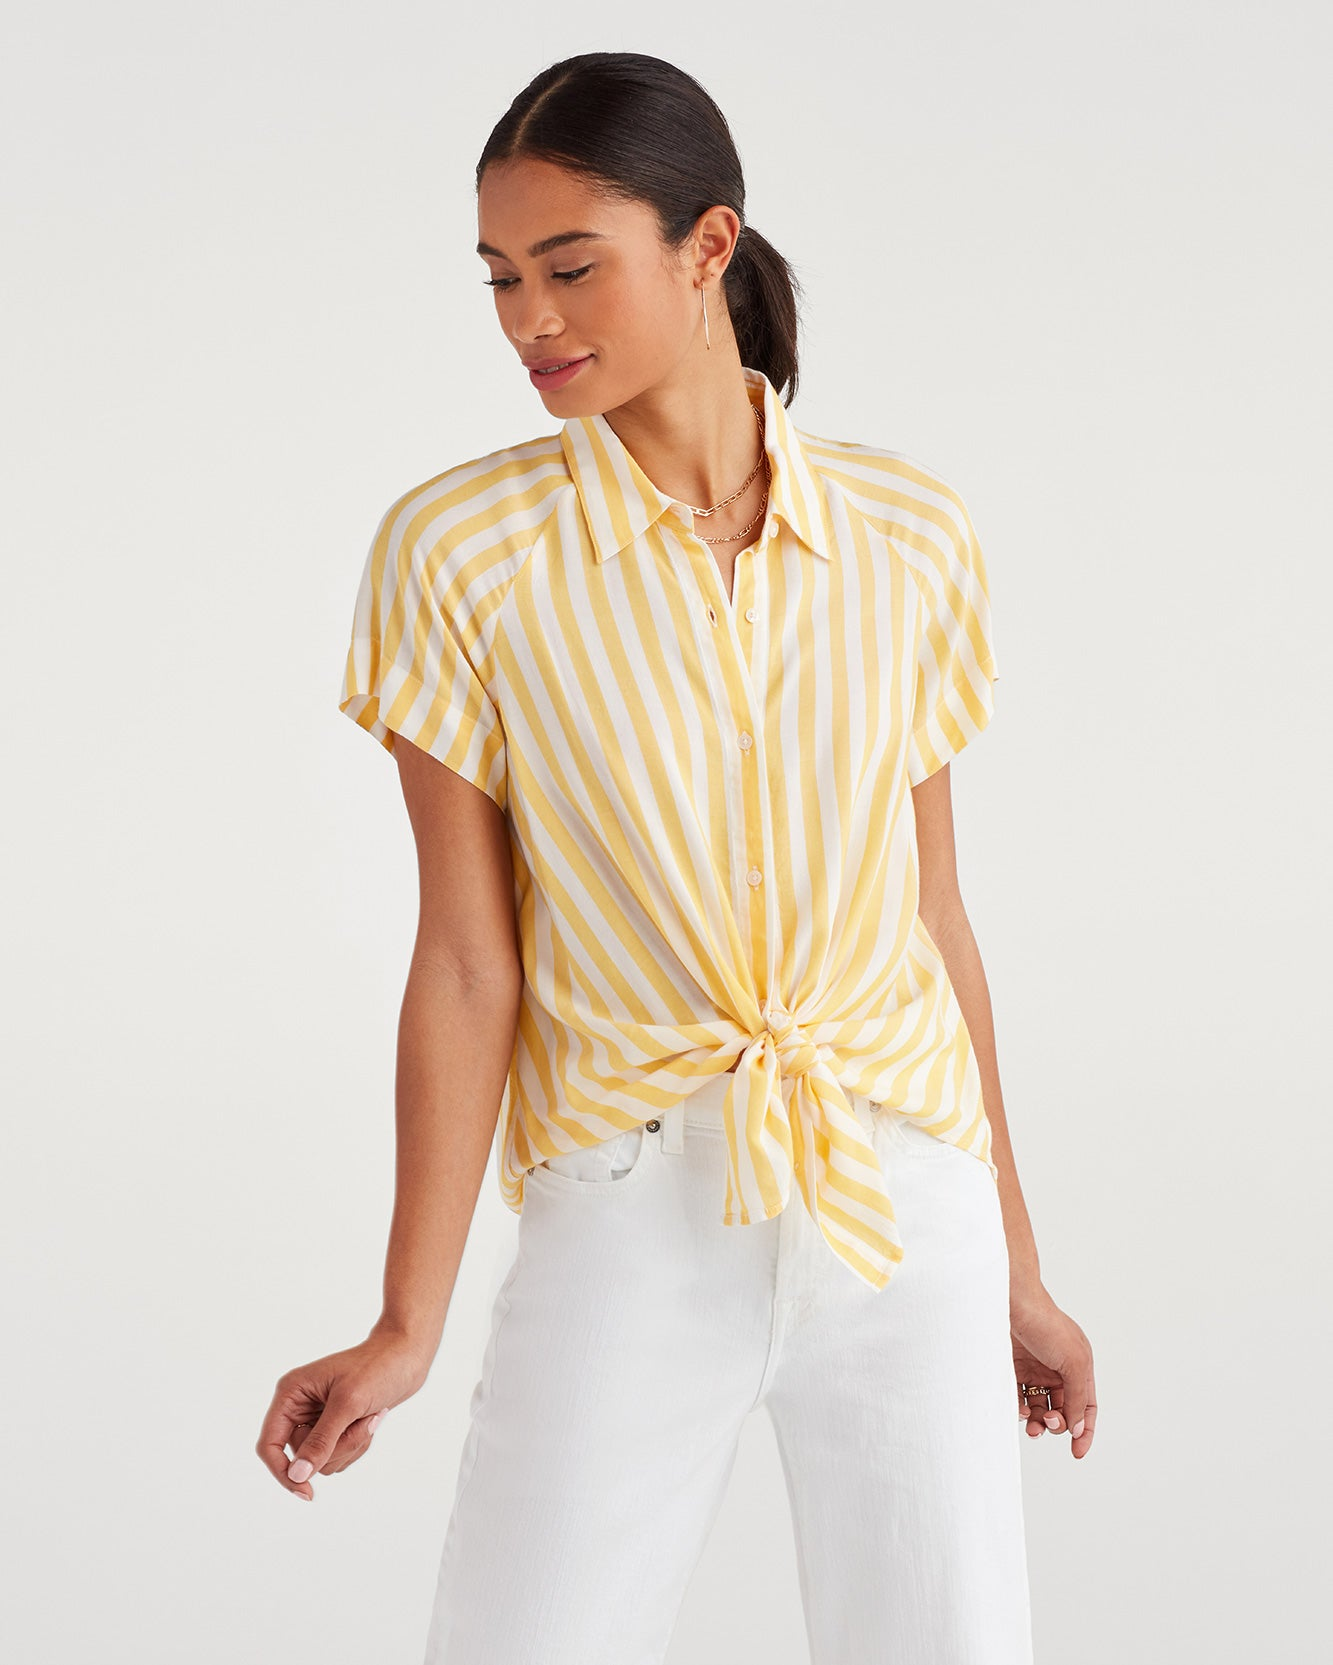 Image of Cap Sleeve Tie Front Shirt in Dandelion and White